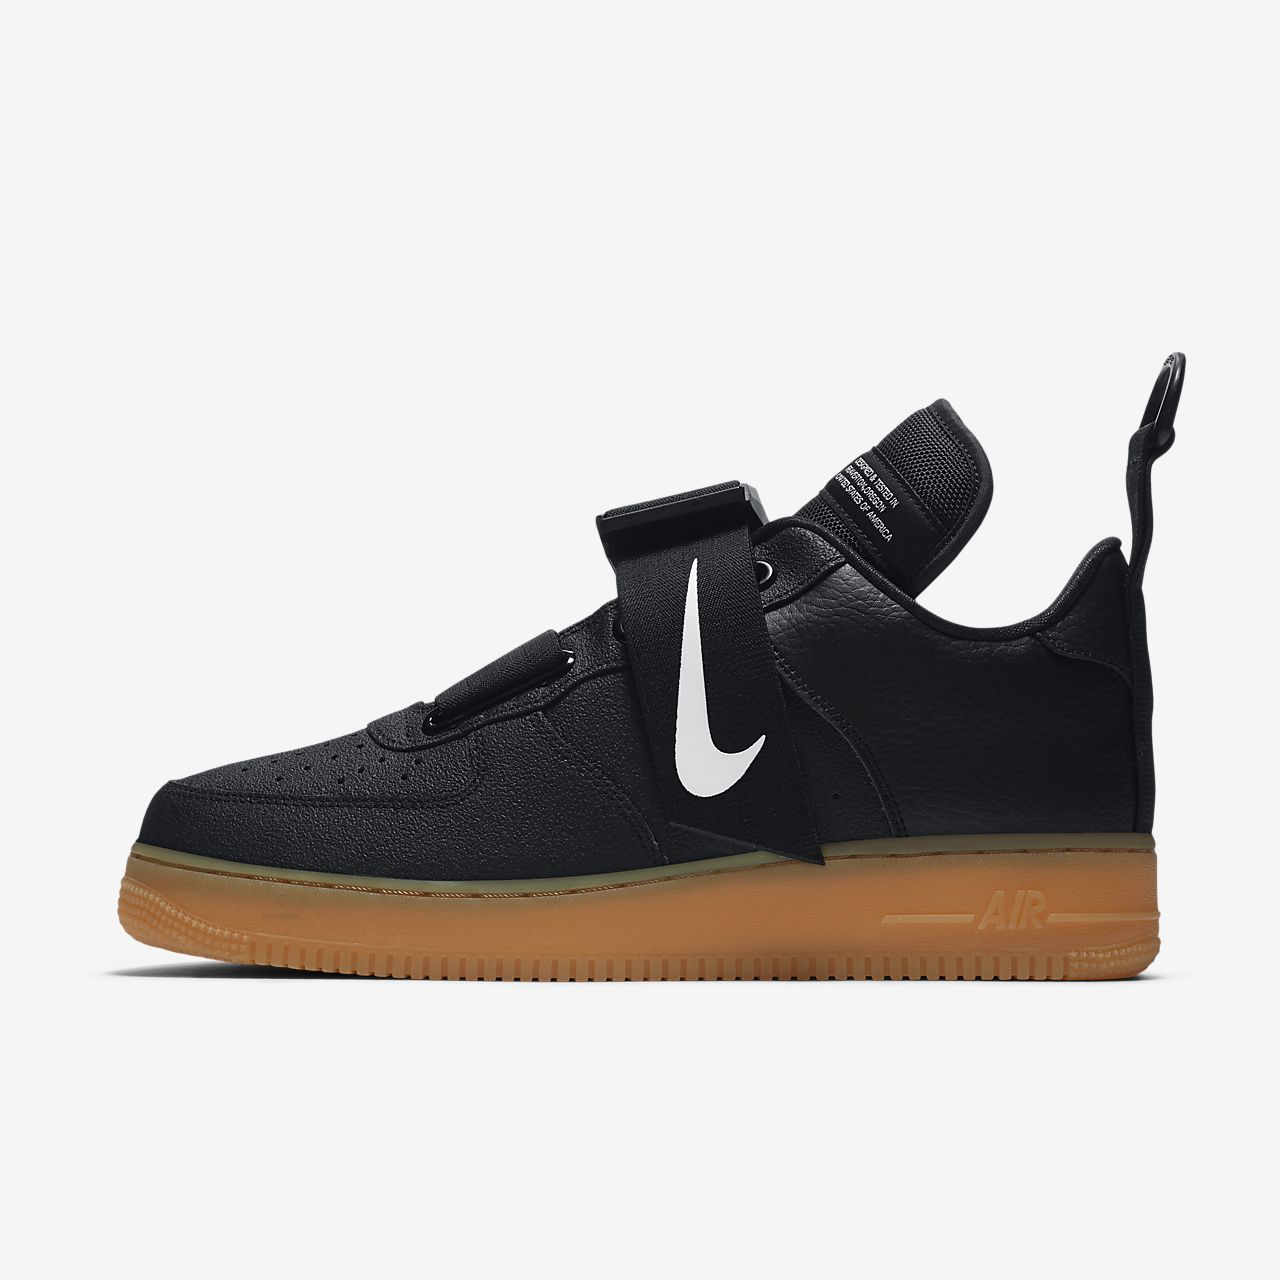 official photos ee6d1 57d96 ... Sko Nike Air Force 1 Utility för män